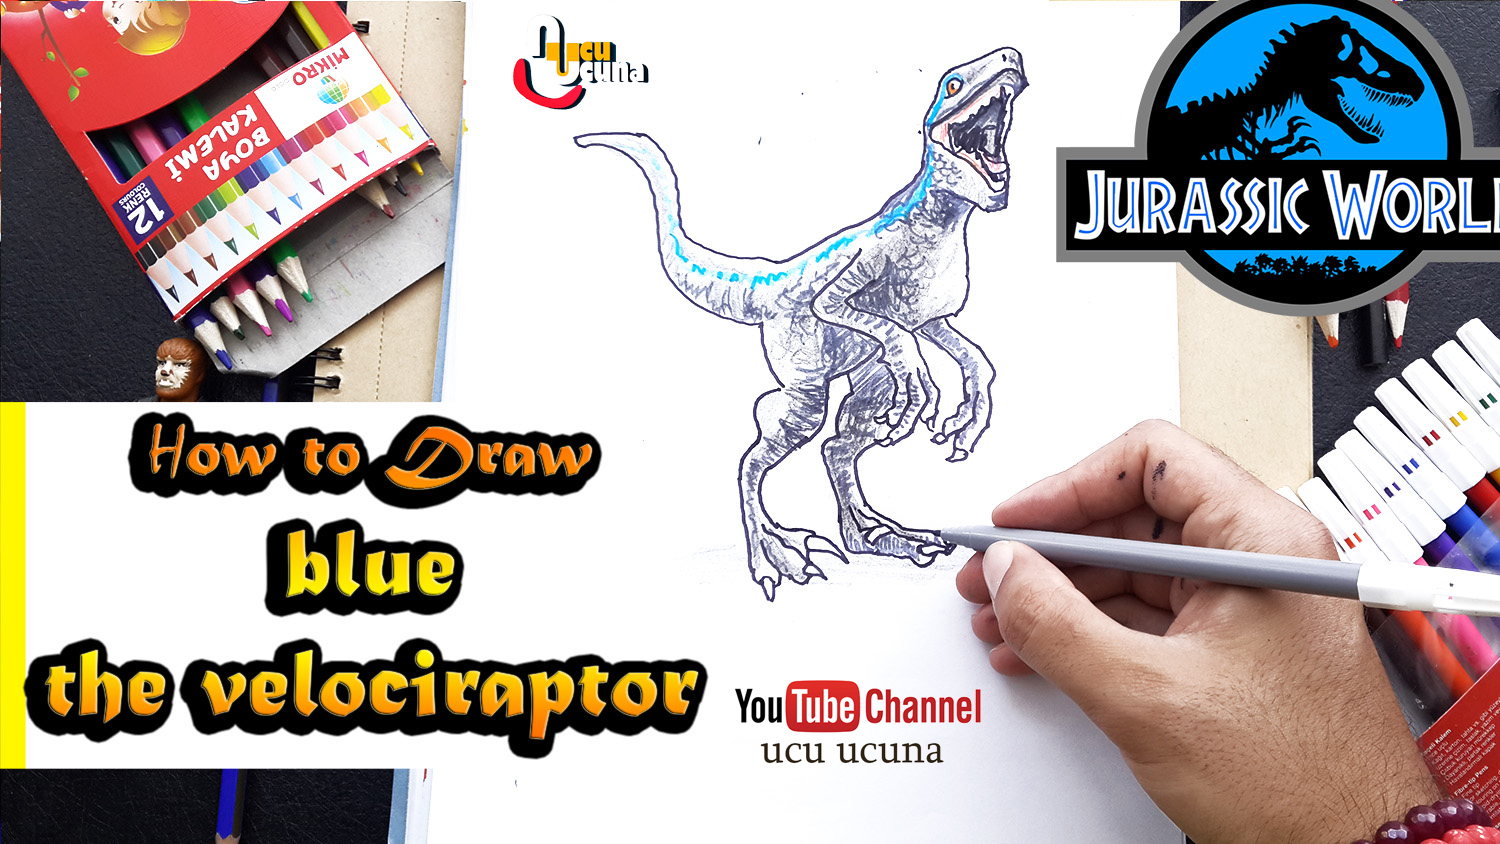 Hi everyone i ll be showing you how to draw balloon  step by step Let s learn draw for  kids  art  important at my life  drow  with me i hope you like funny videos  tutorial if you like my draw you click my youtube channel ucu ucuna